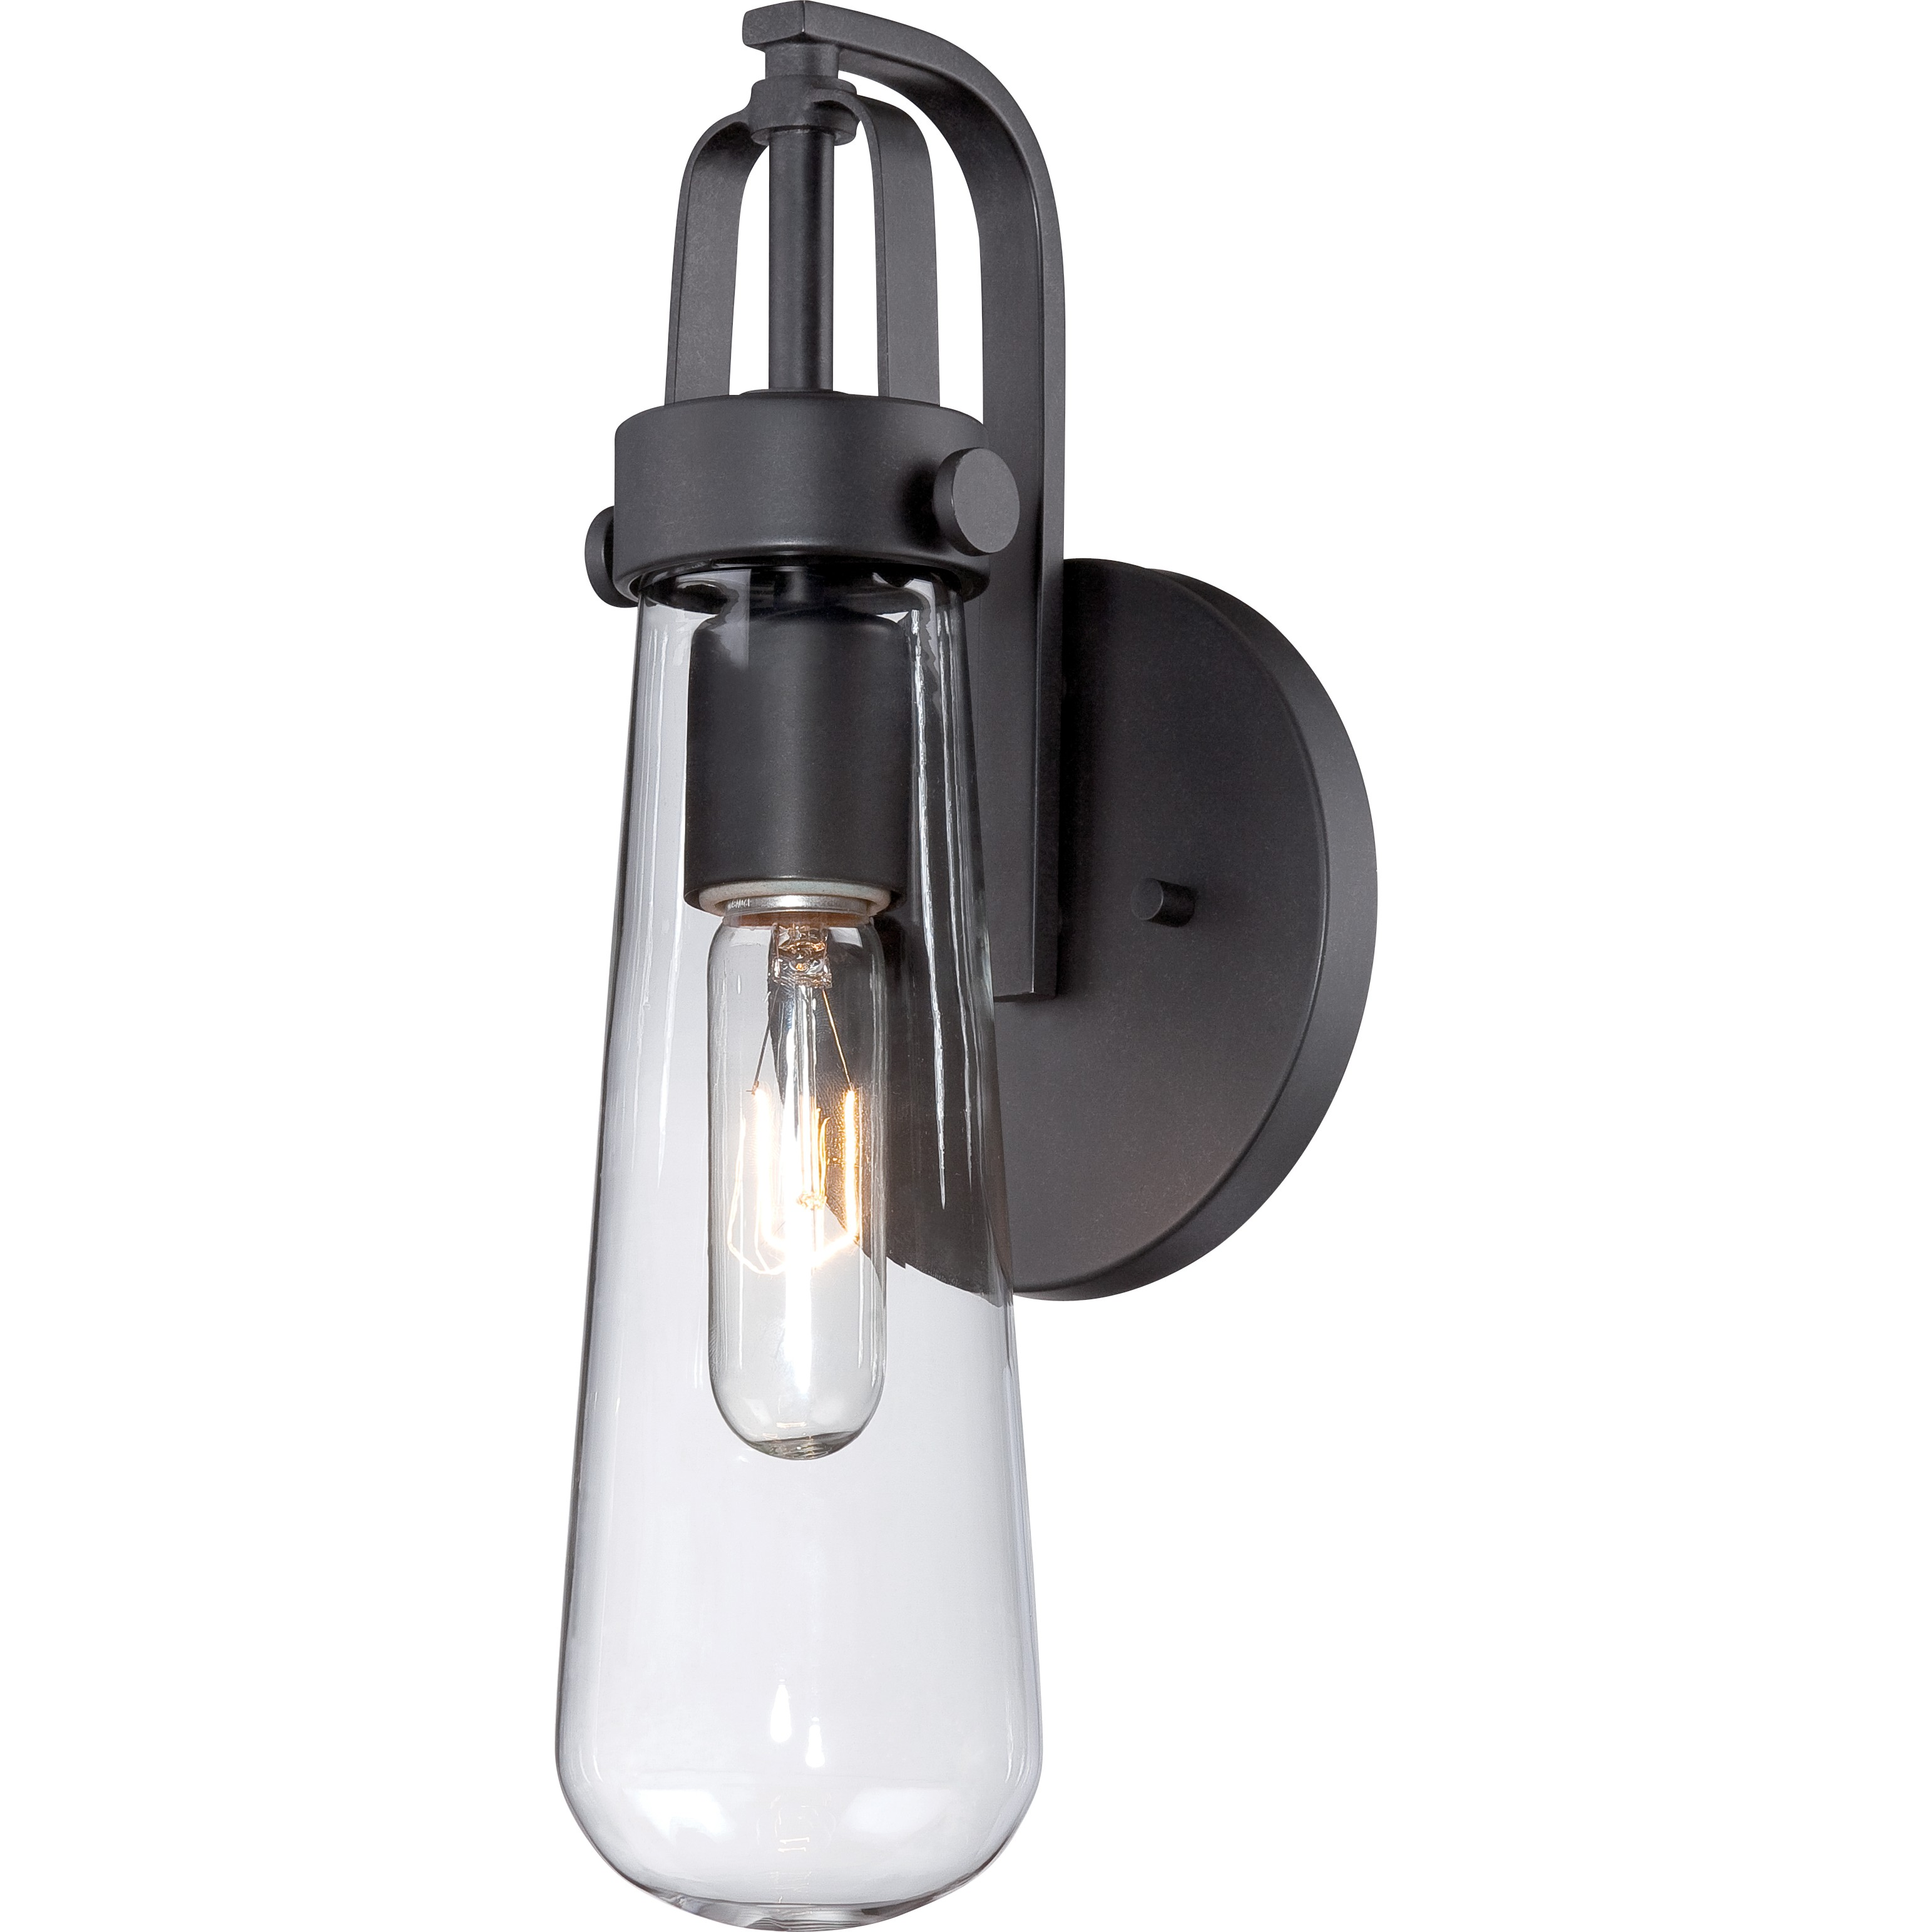 cozy nuvo lighting 1 Light Wall Sconce and a Vintage Light Bulb for home lighting ideas